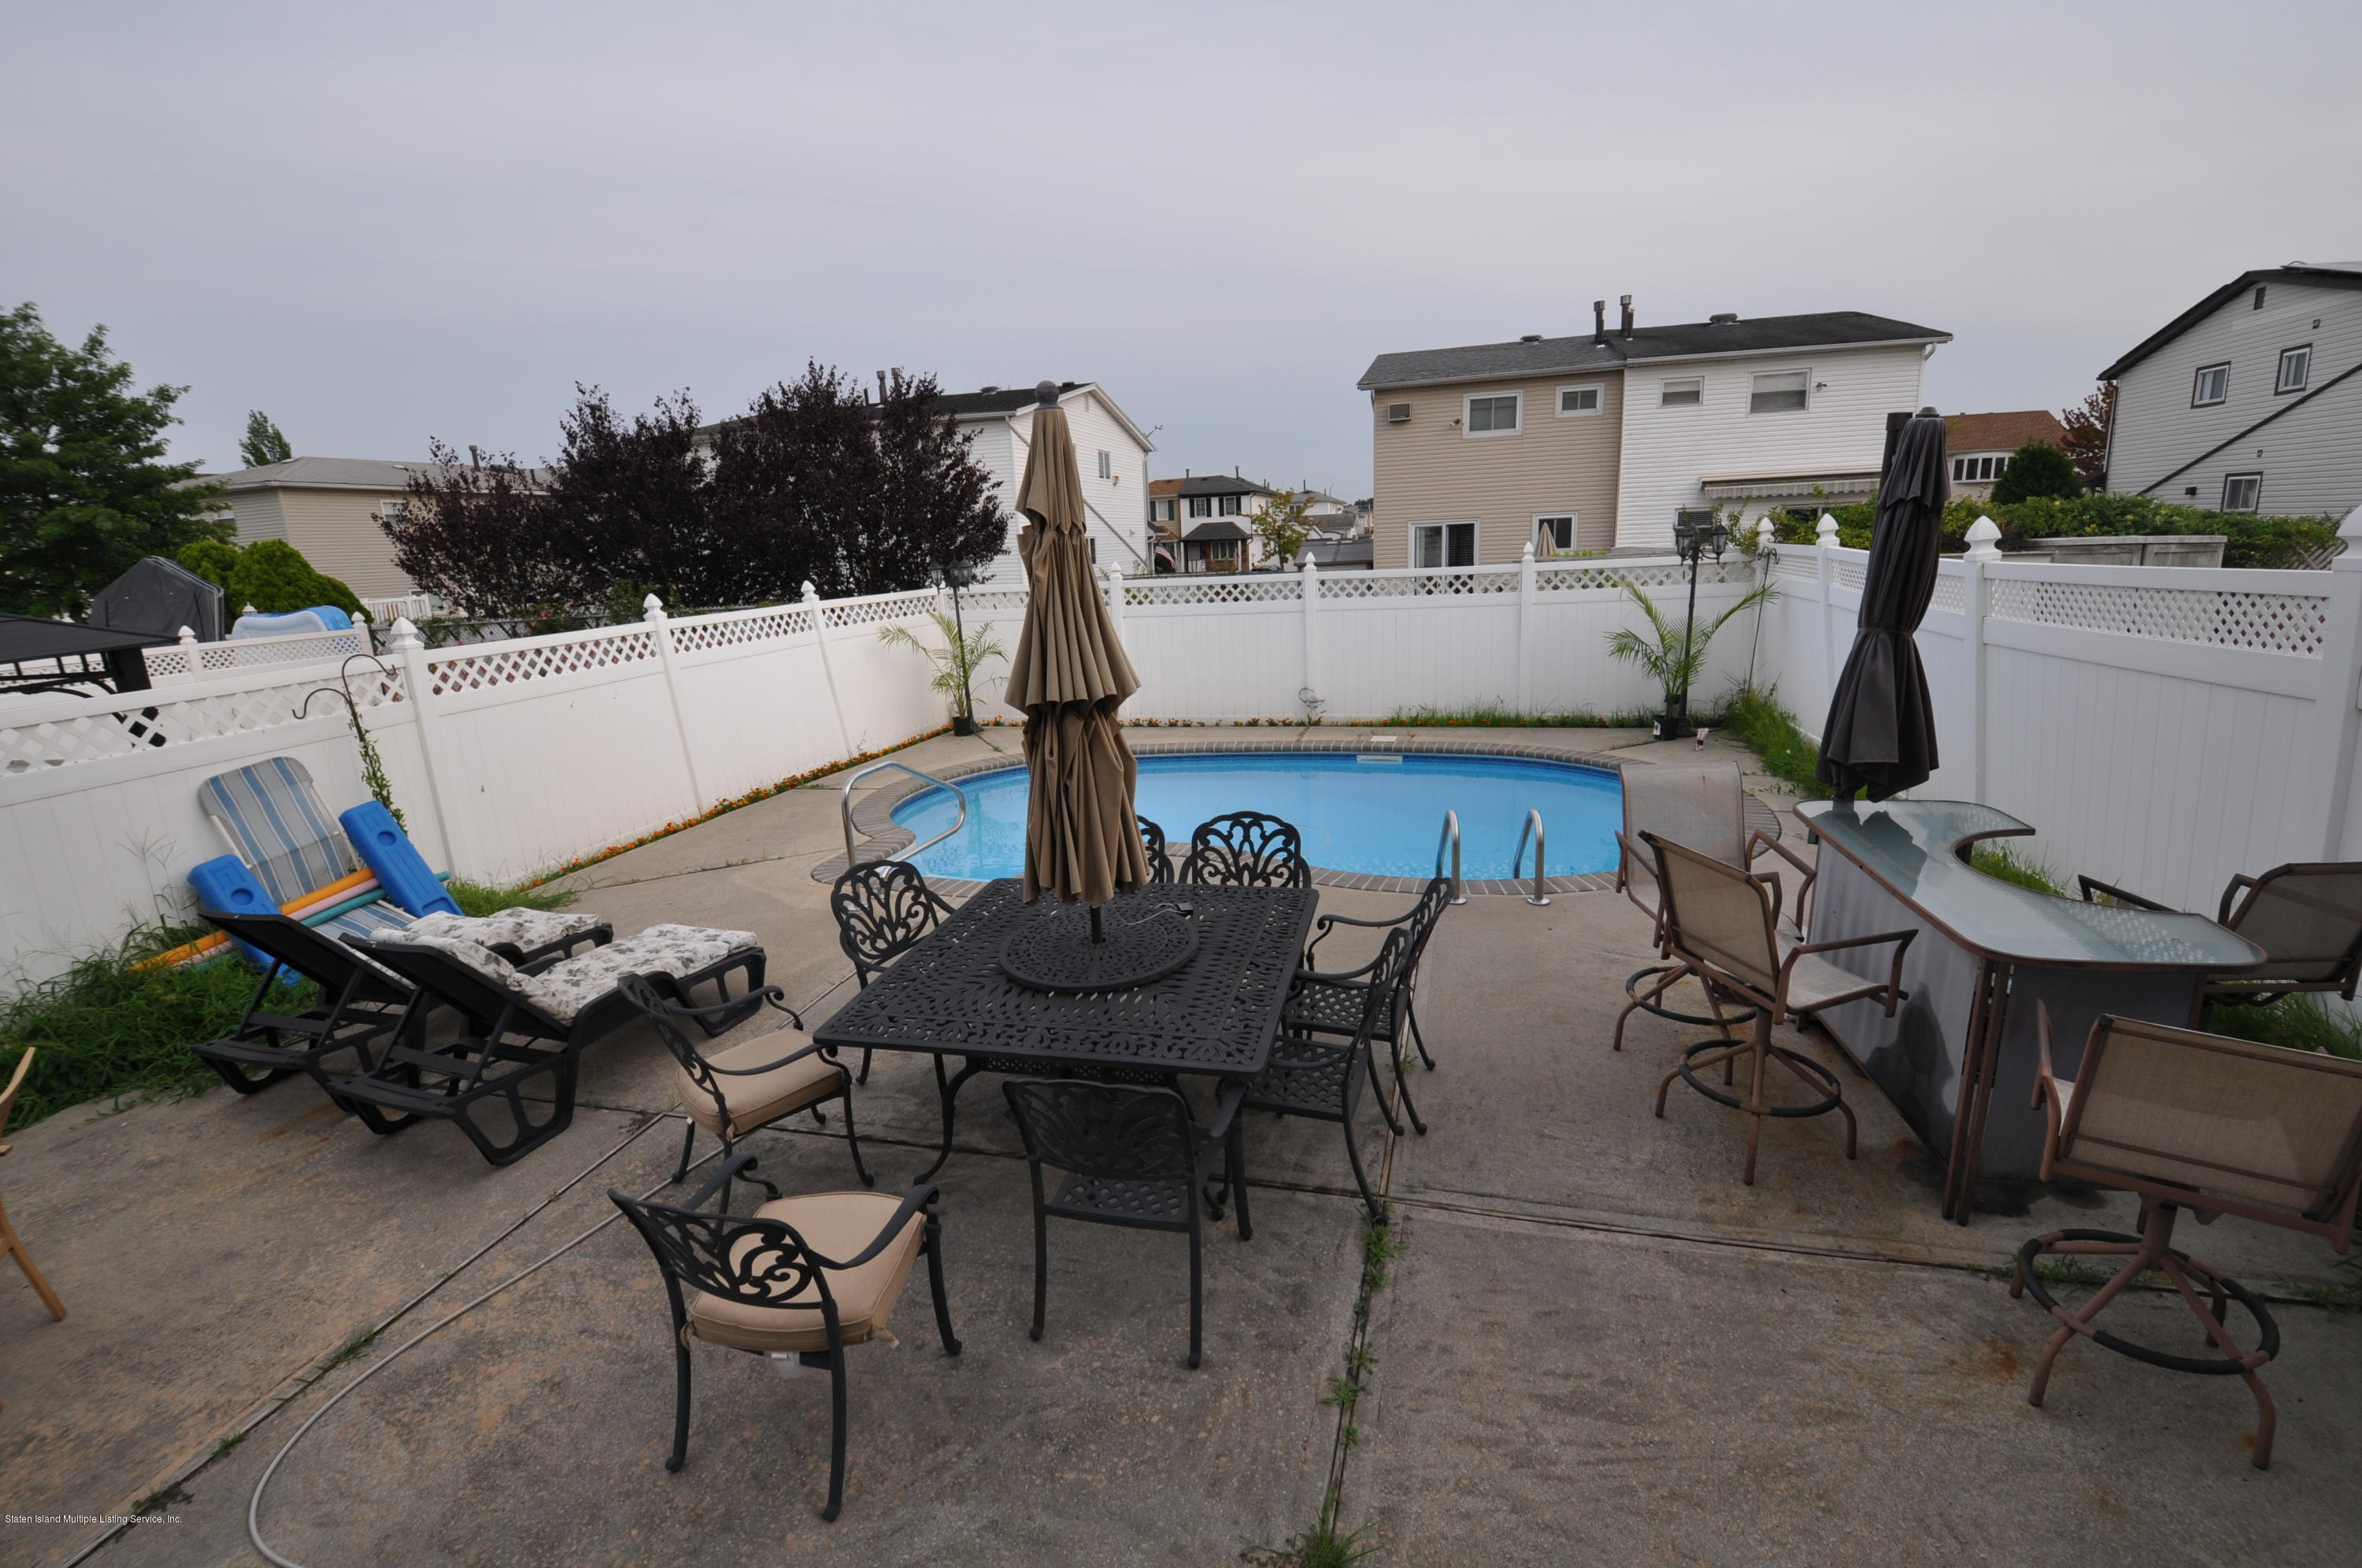 Single Family - Semi-Attached 78 Token Street  Staten Island, NY 10312, MLS-1131219-10